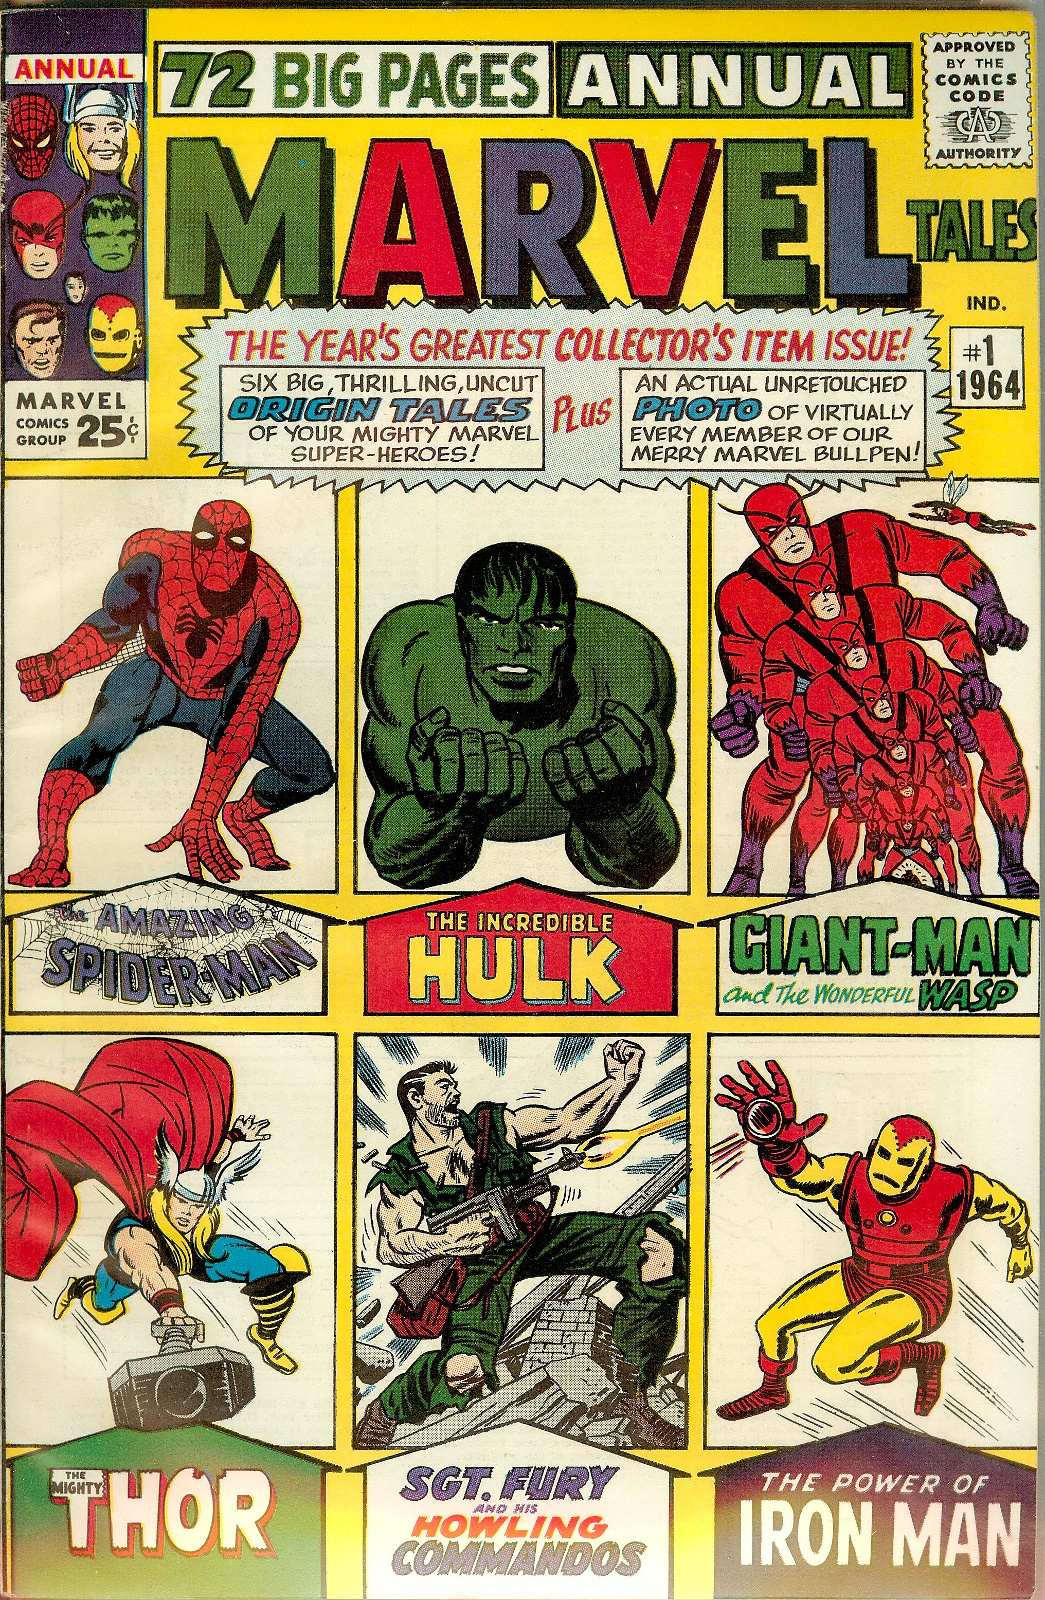 Marvel Tales #1 and The Galt Book Exchange